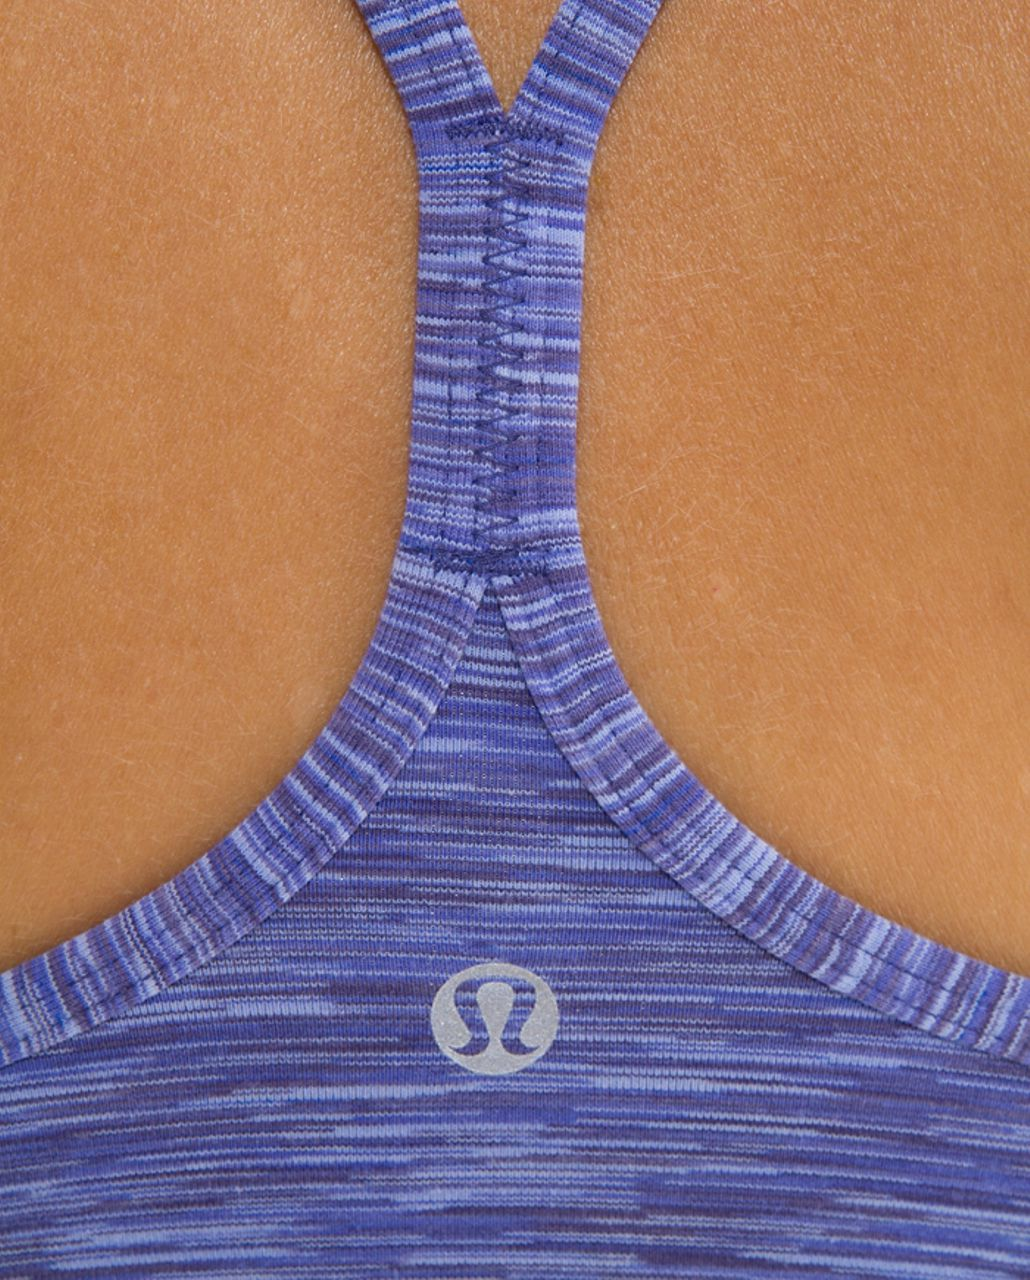 Lululemon Power Y Tank - Royalty Space Dye